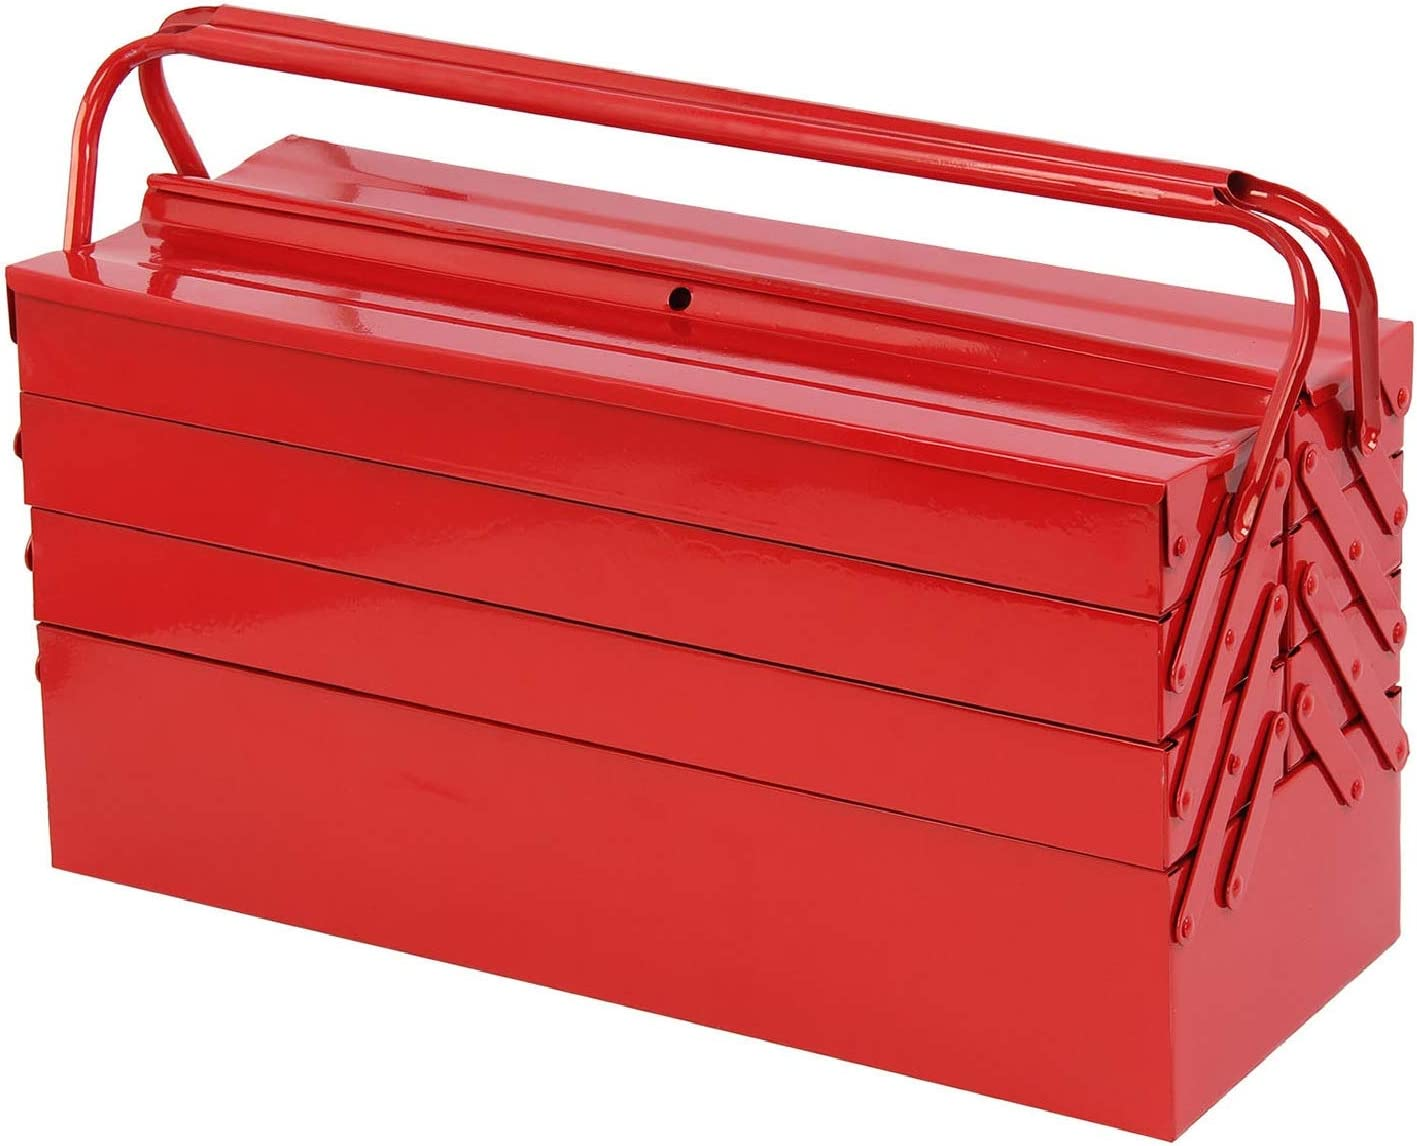 "4 Tier 7 Tray Heavy Duty Home DIY Metal Cantilever Tool Box 21/"" NEW 530mm"